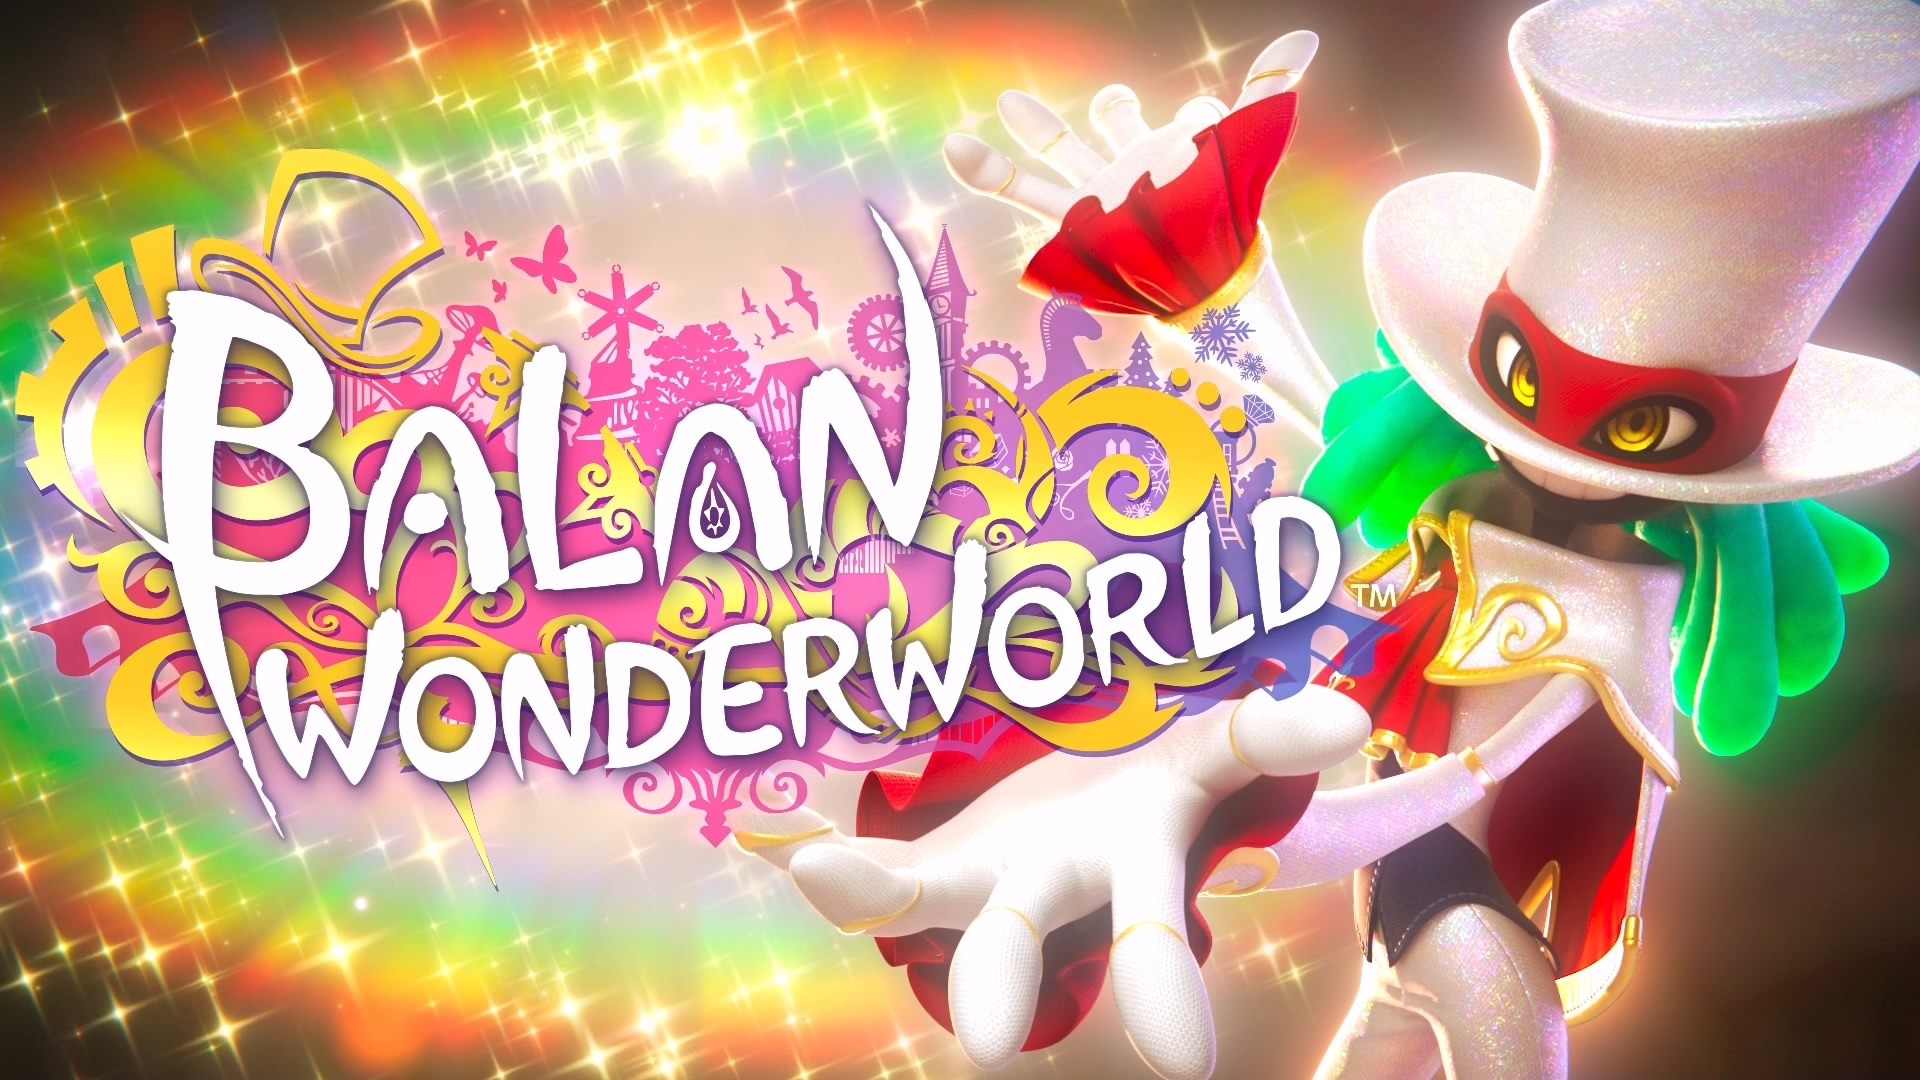 balan_wonderworld_splash Balan Wonderworld? More Like Balan Boringworld, Unfortunately